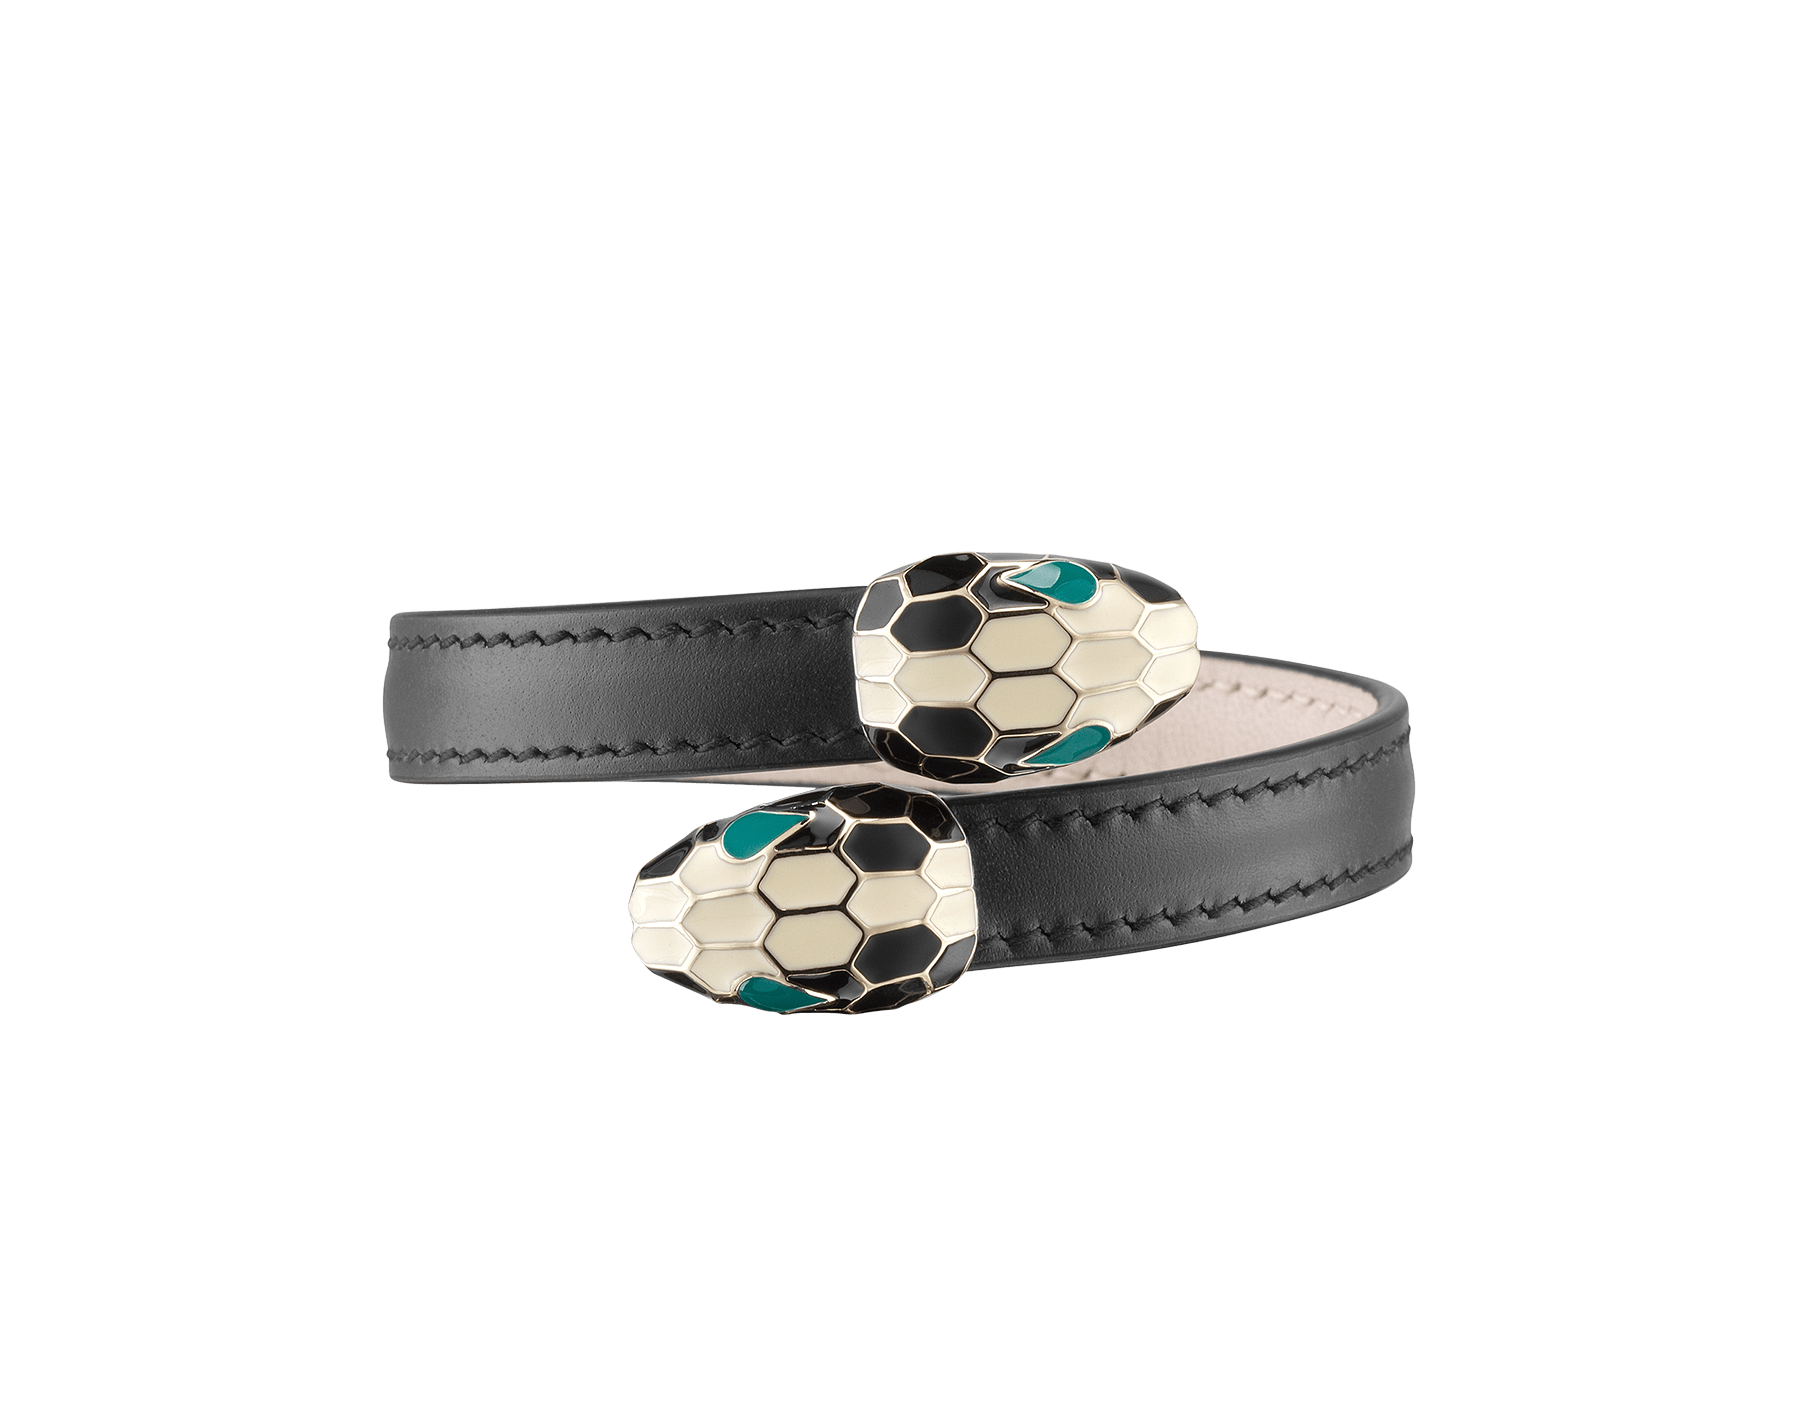 Serpenti Forever soft bangle bracelet in black calf leather, with brass light gold plated hardware. Iconic contraire snakehead décor in black and white enamel, with green enamel eyes. 287398 image 1